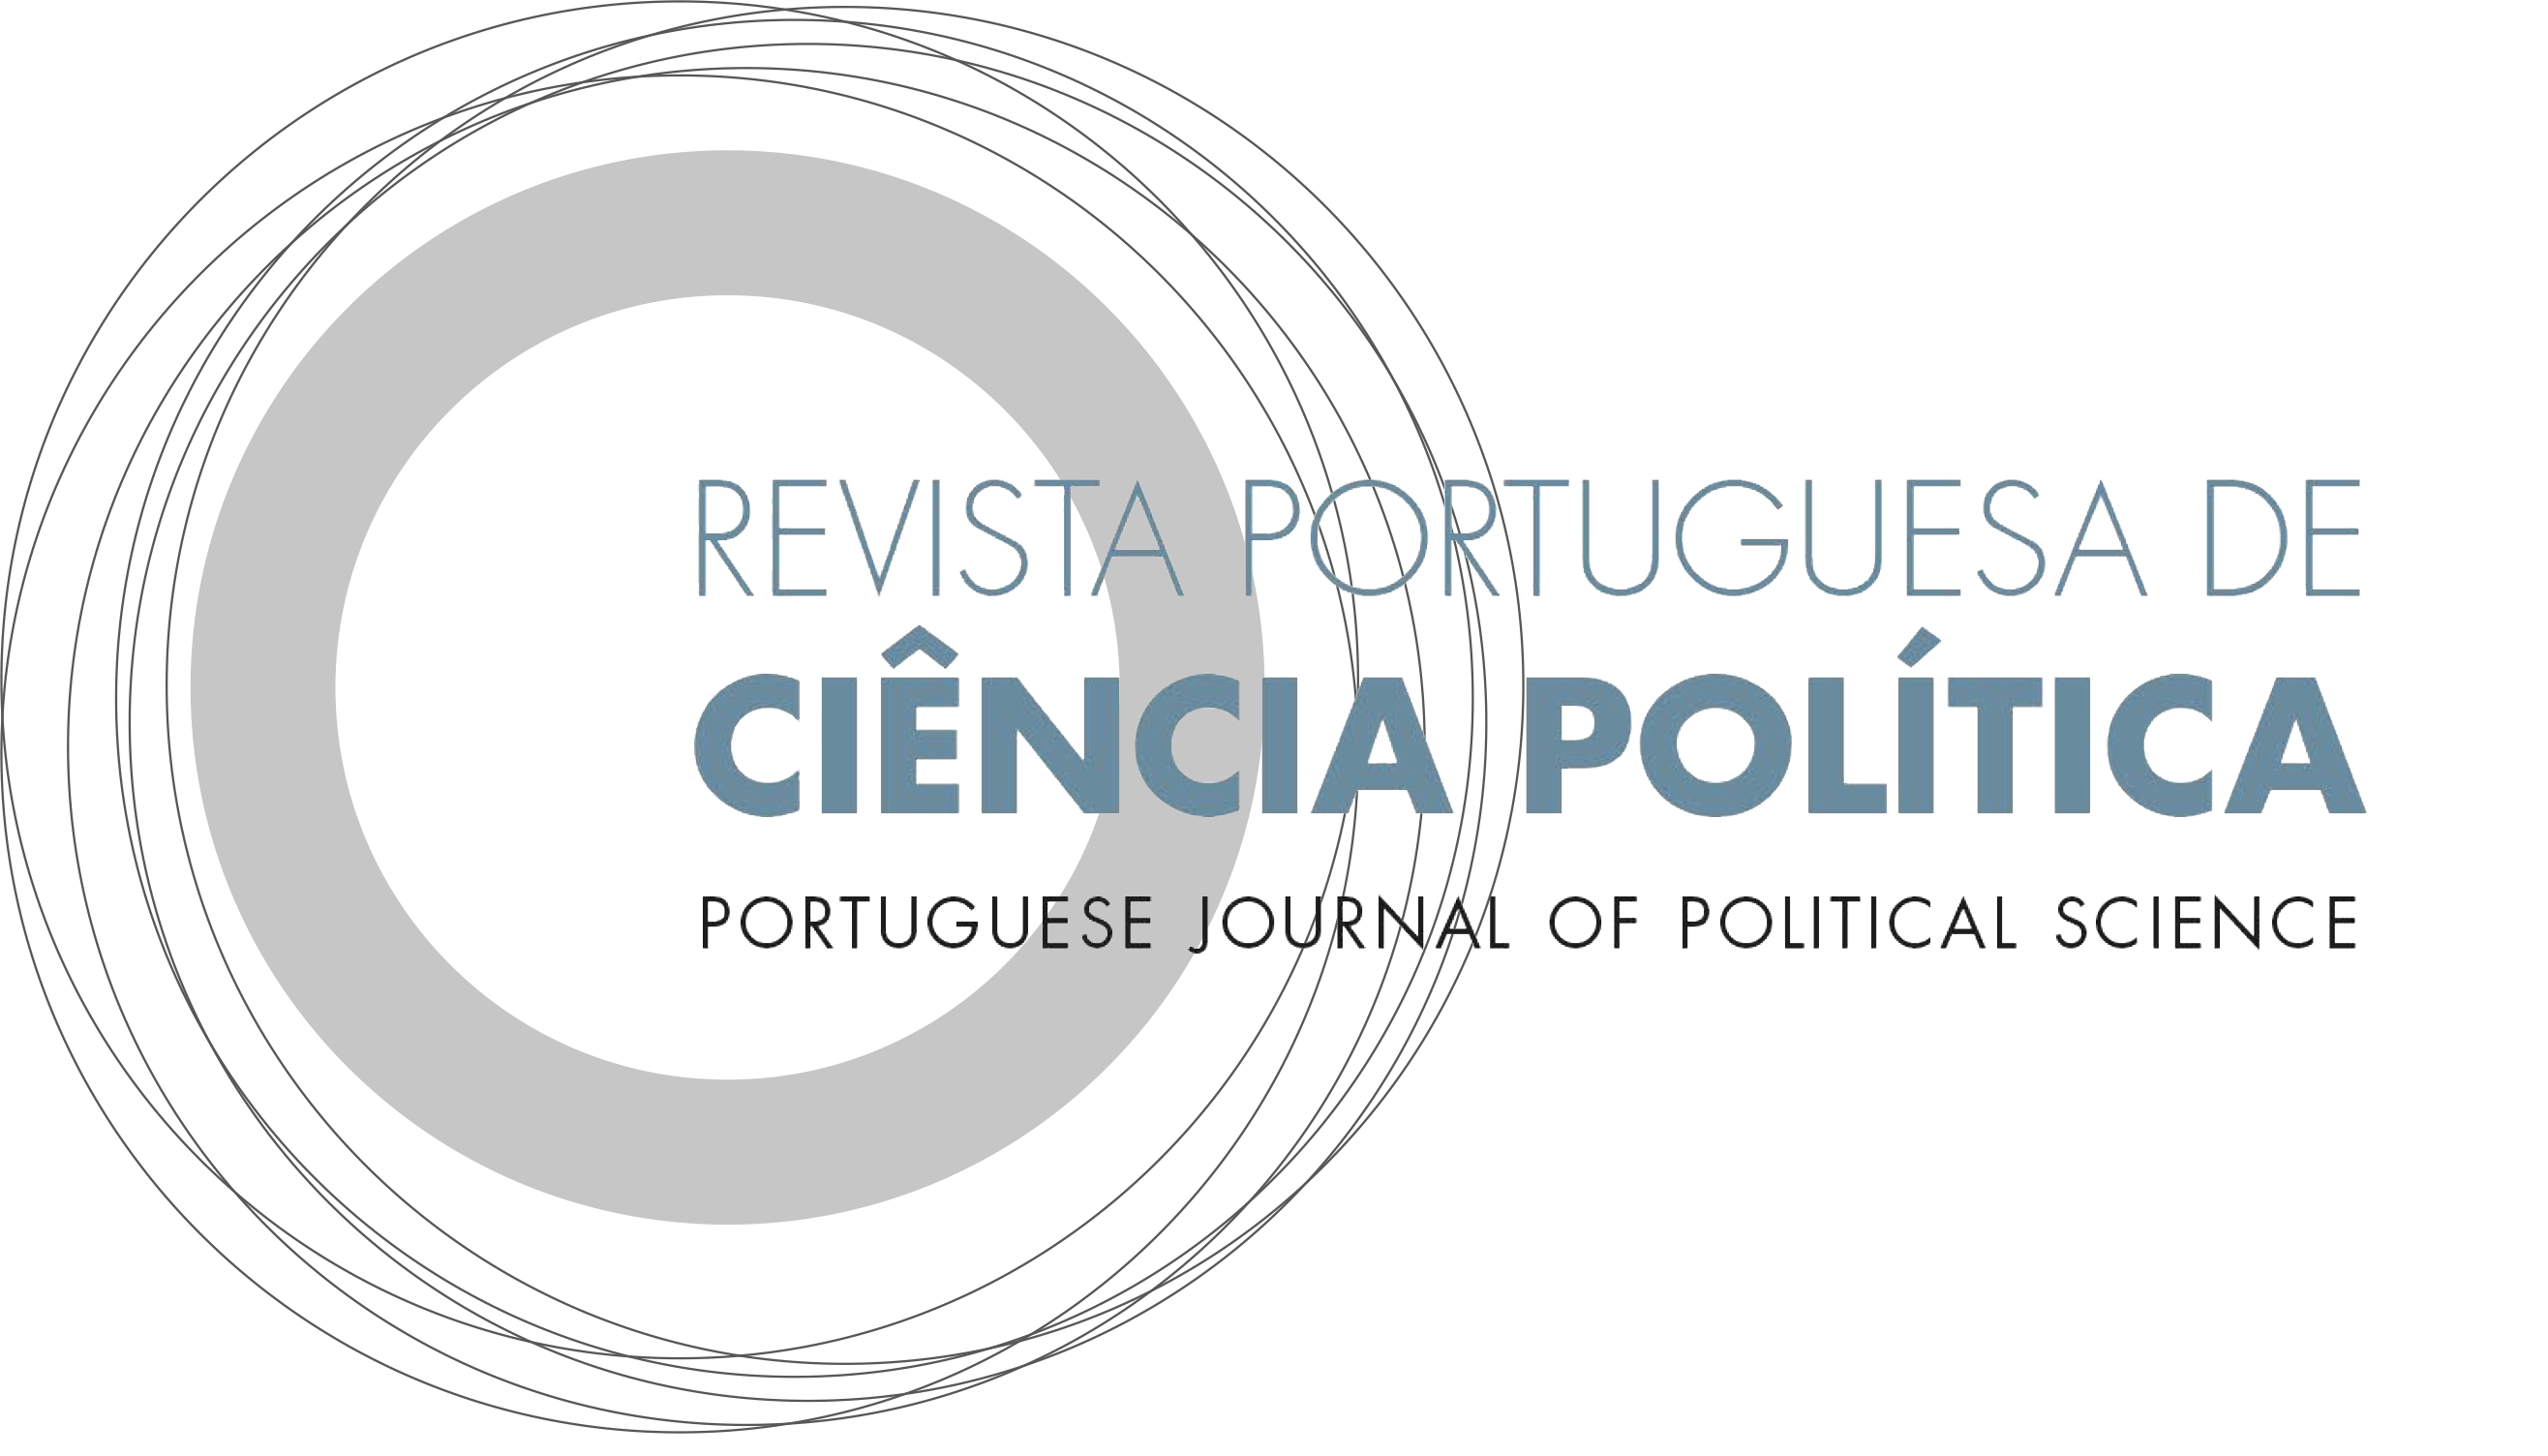 Portuguese Journal of Political Science